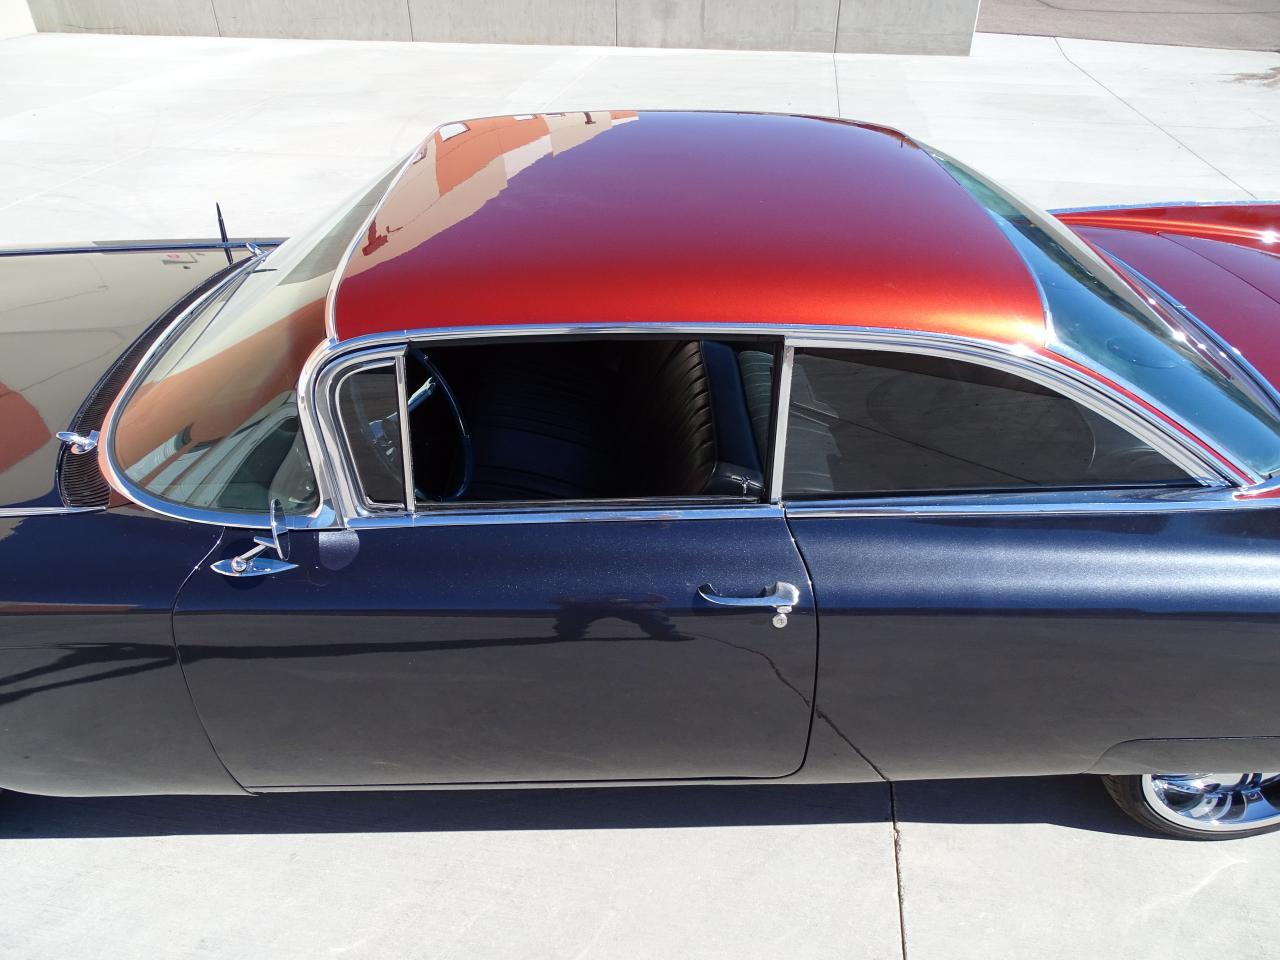 Large Picture of 1960 Cadillac Series 62 - $51,000.00 Offered by Gateway Classic Cars - Scottsdale - MZFH